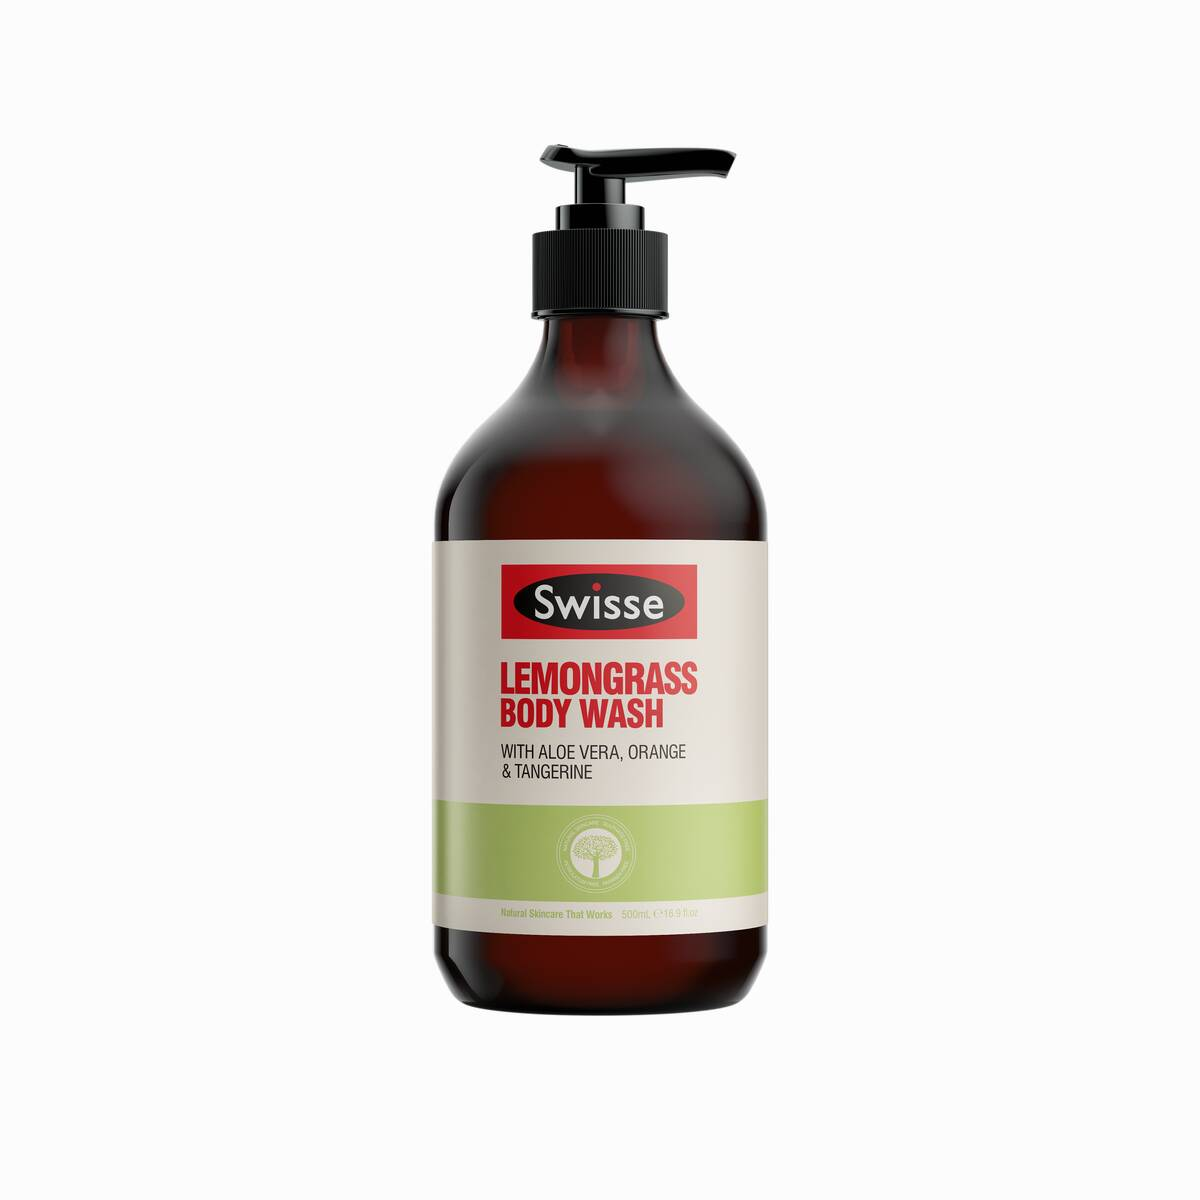 Swisse skincare body lemongrass body wash 500ml Pump product shot